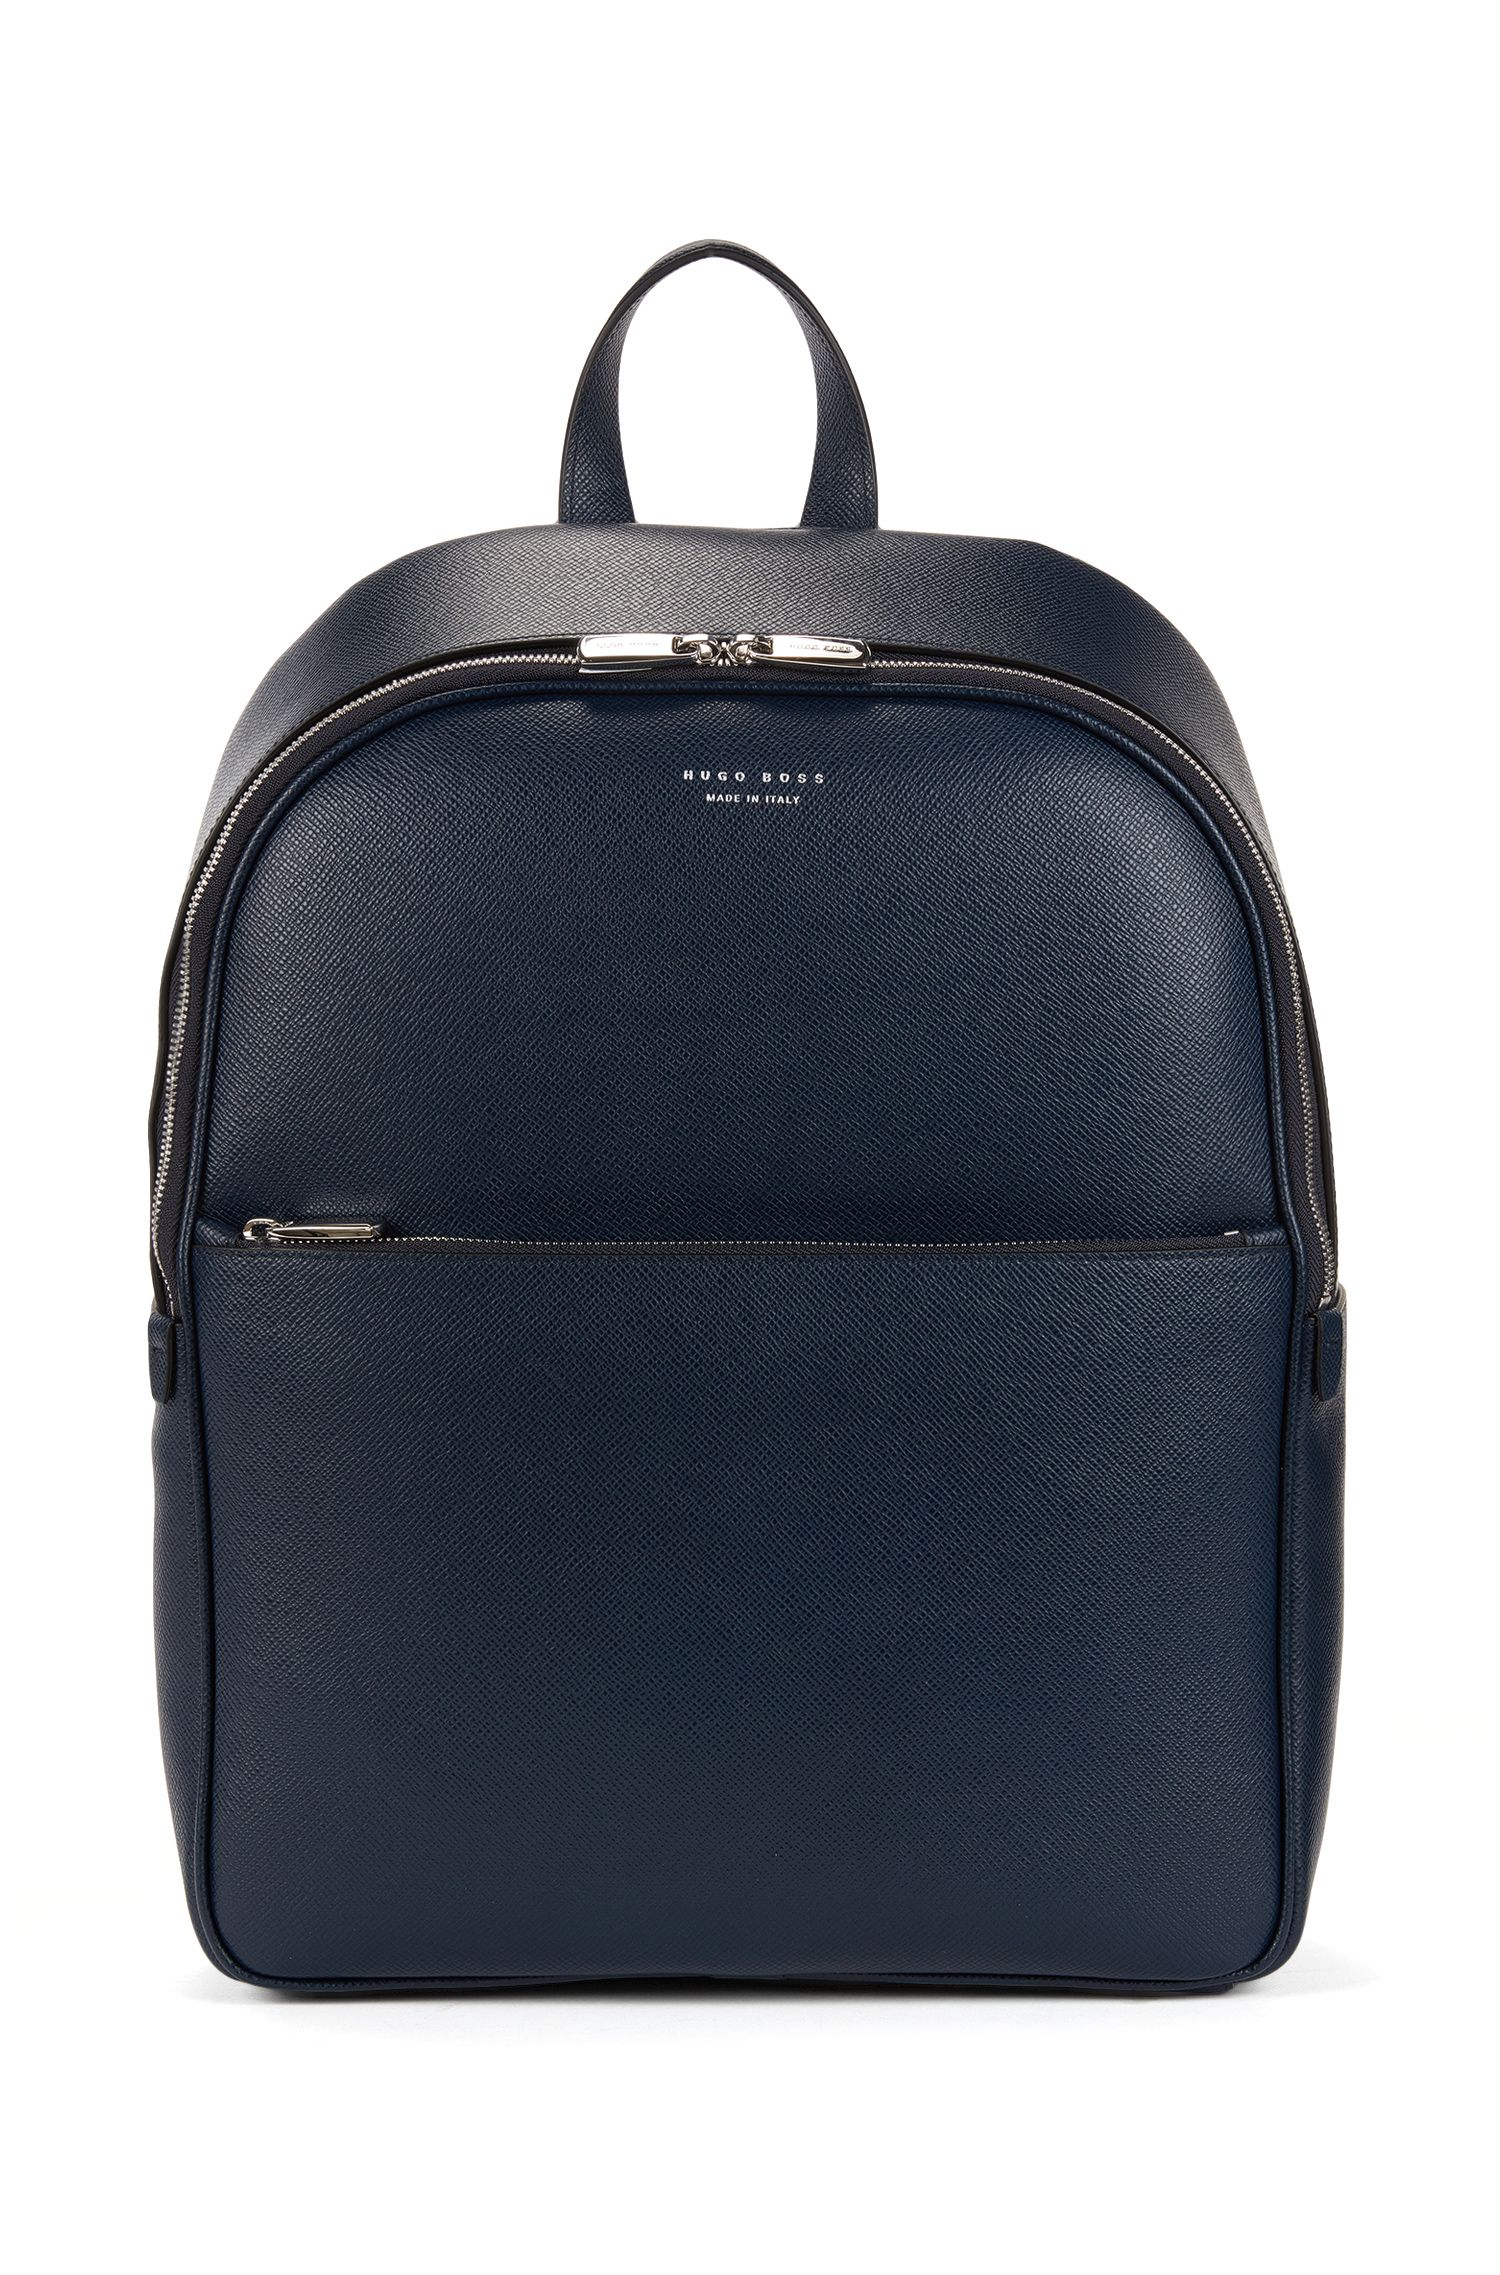 Signature Collection backpack in palmellato leather